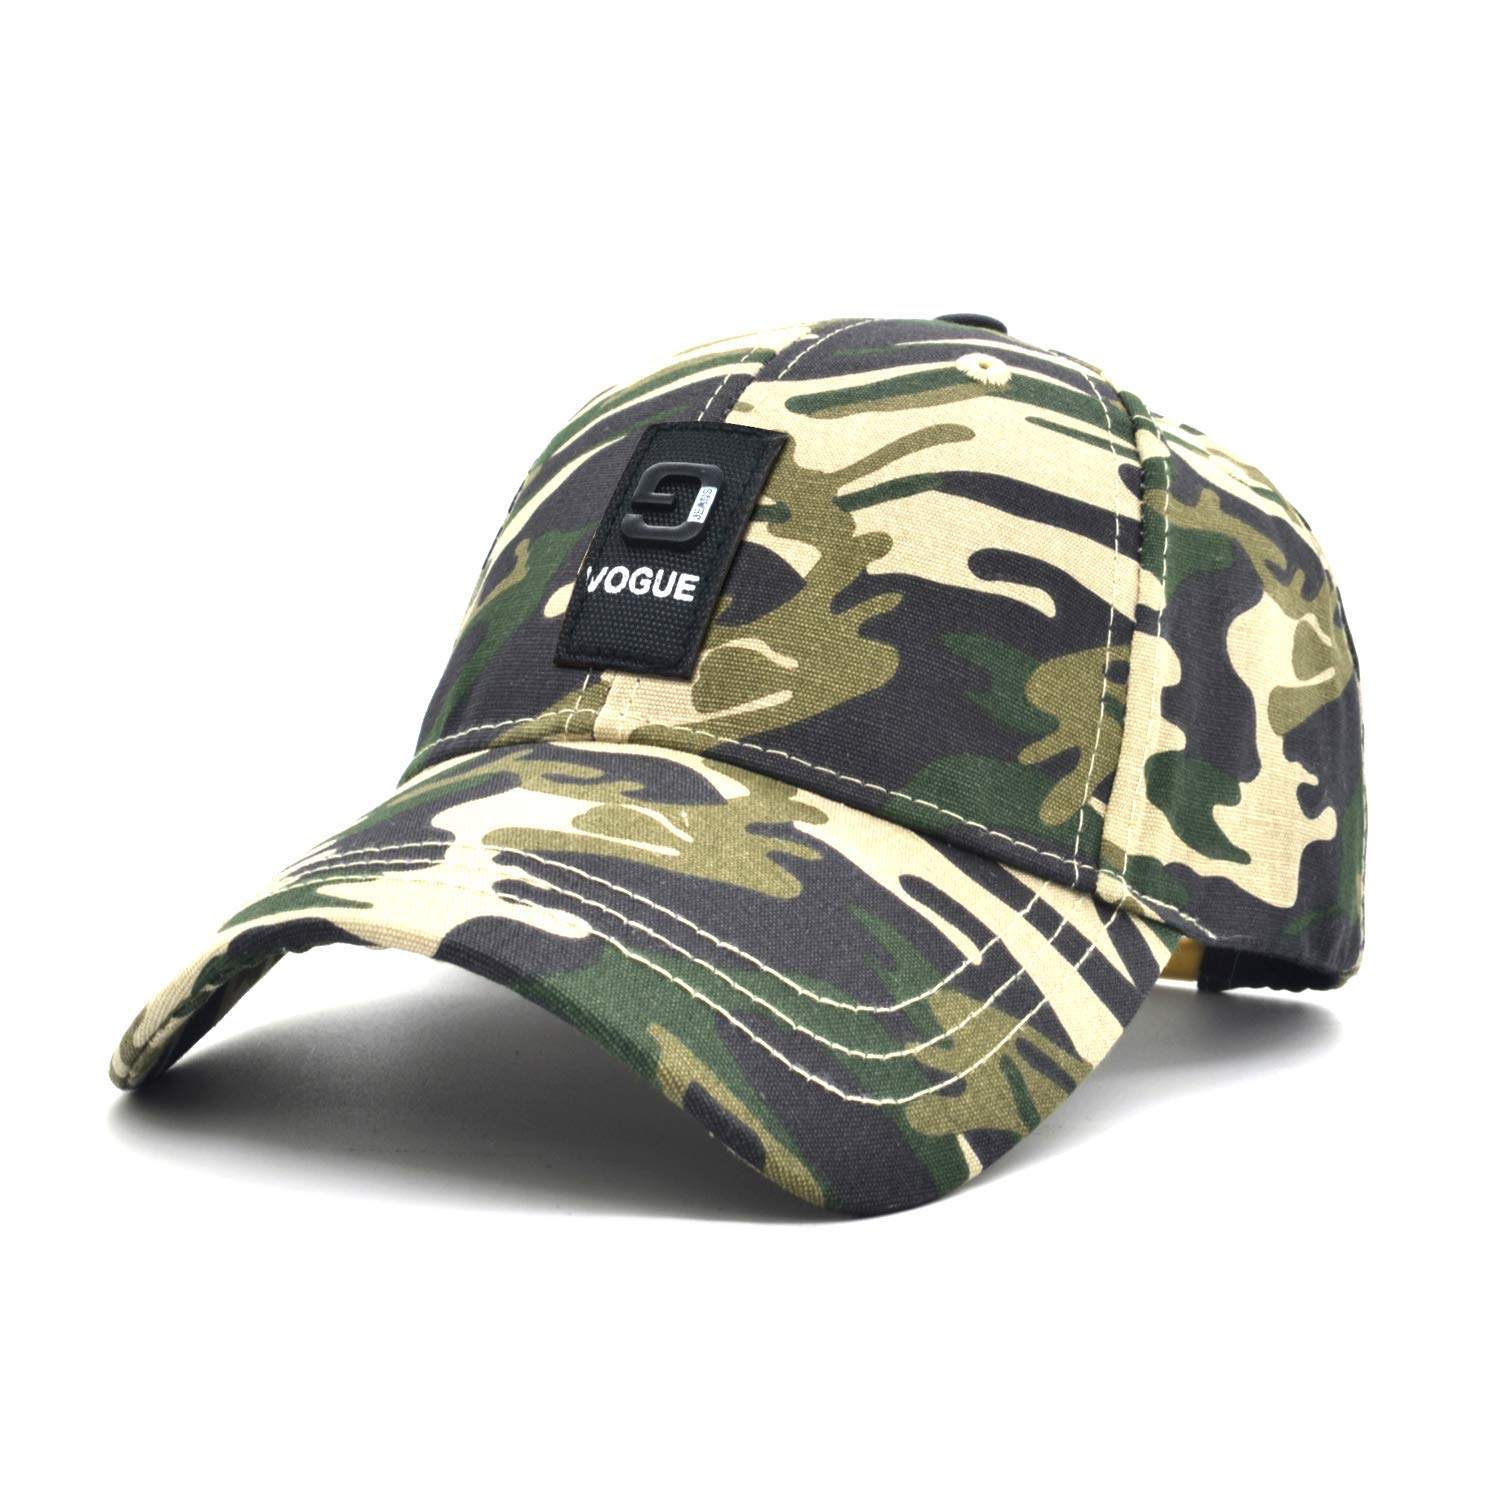 a903bd823b0 Low Profile Baseball Cap Novelty Army Green Unisex Women Trucker Hat Men  Sun hat Plain Cotton Cap Camo Adjustable Cap Outdoor Sport Hunt Cap (Army  ...